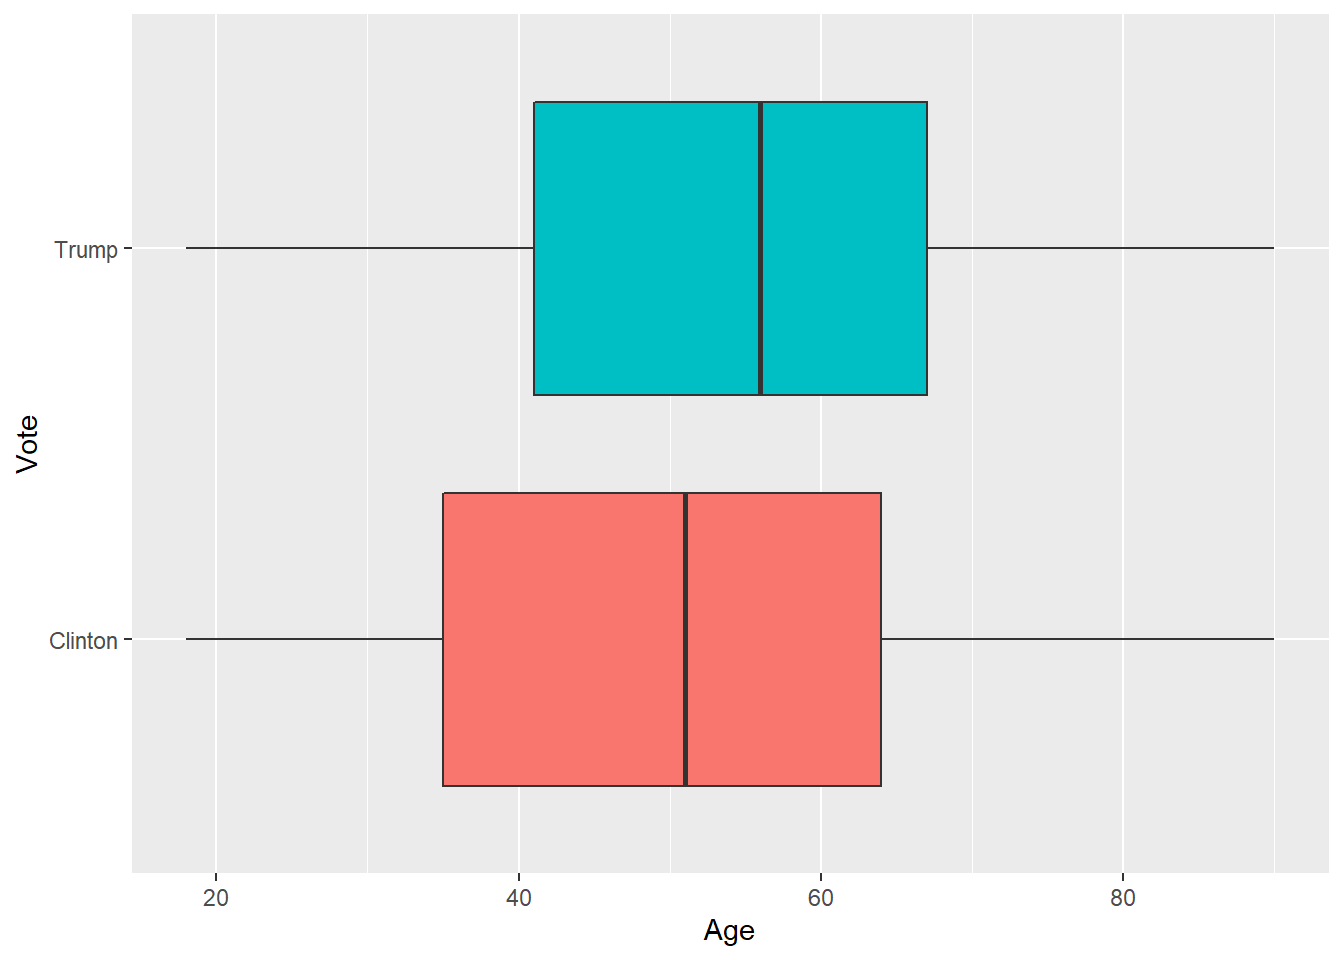 Boxplot of age by vote